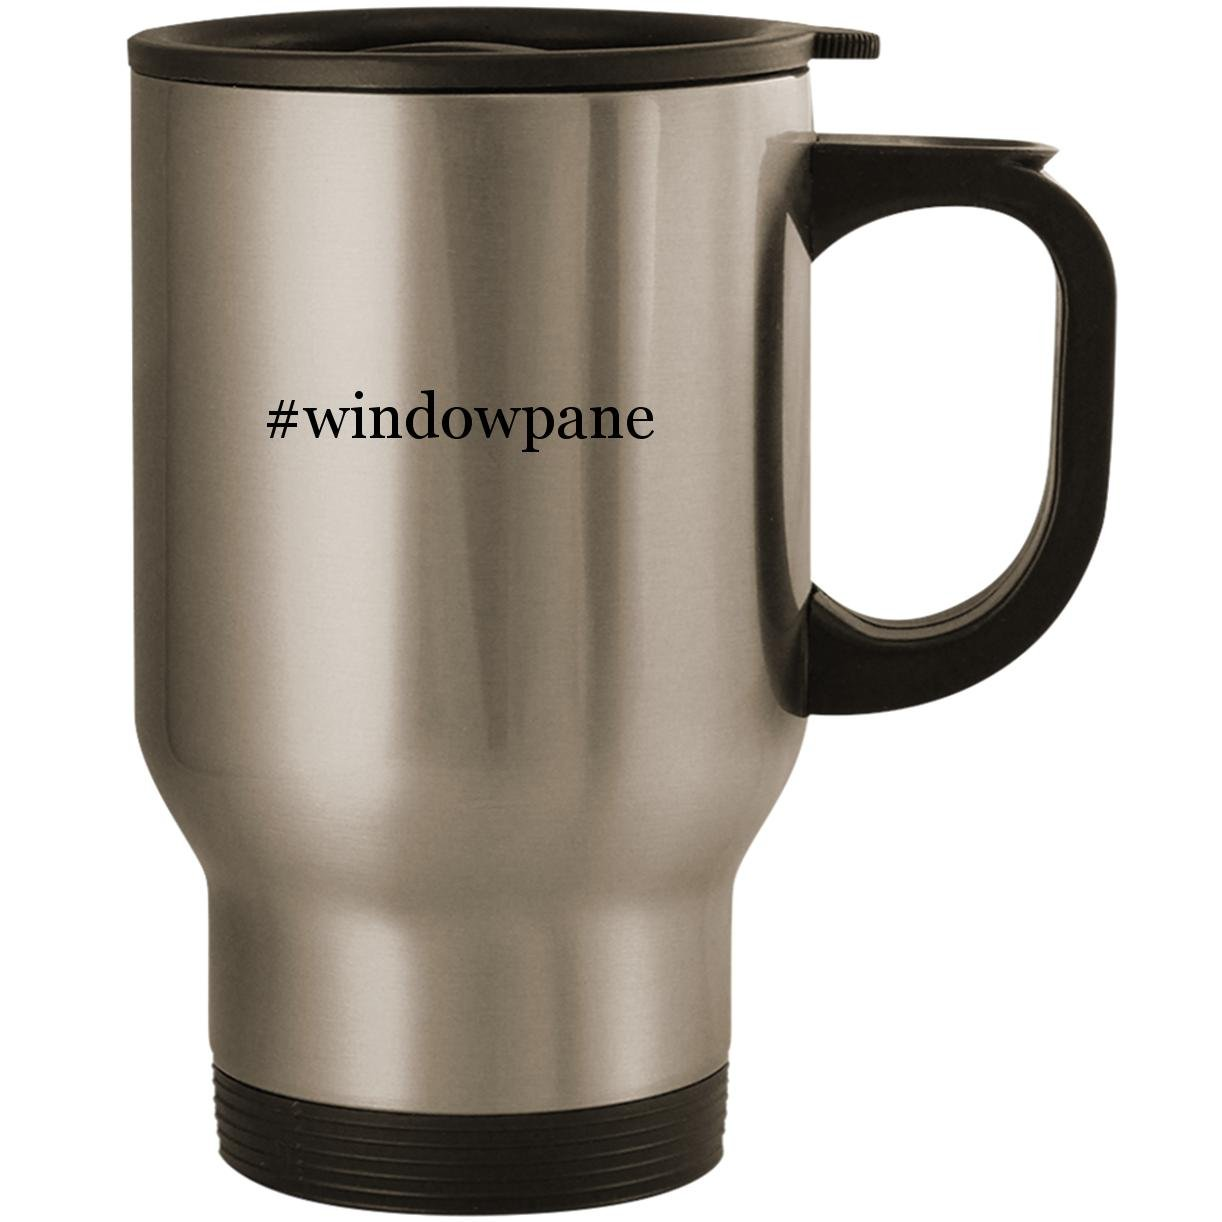 #windowpane - Stainless Steel 14oz Road Ready Travel Mug, Silver